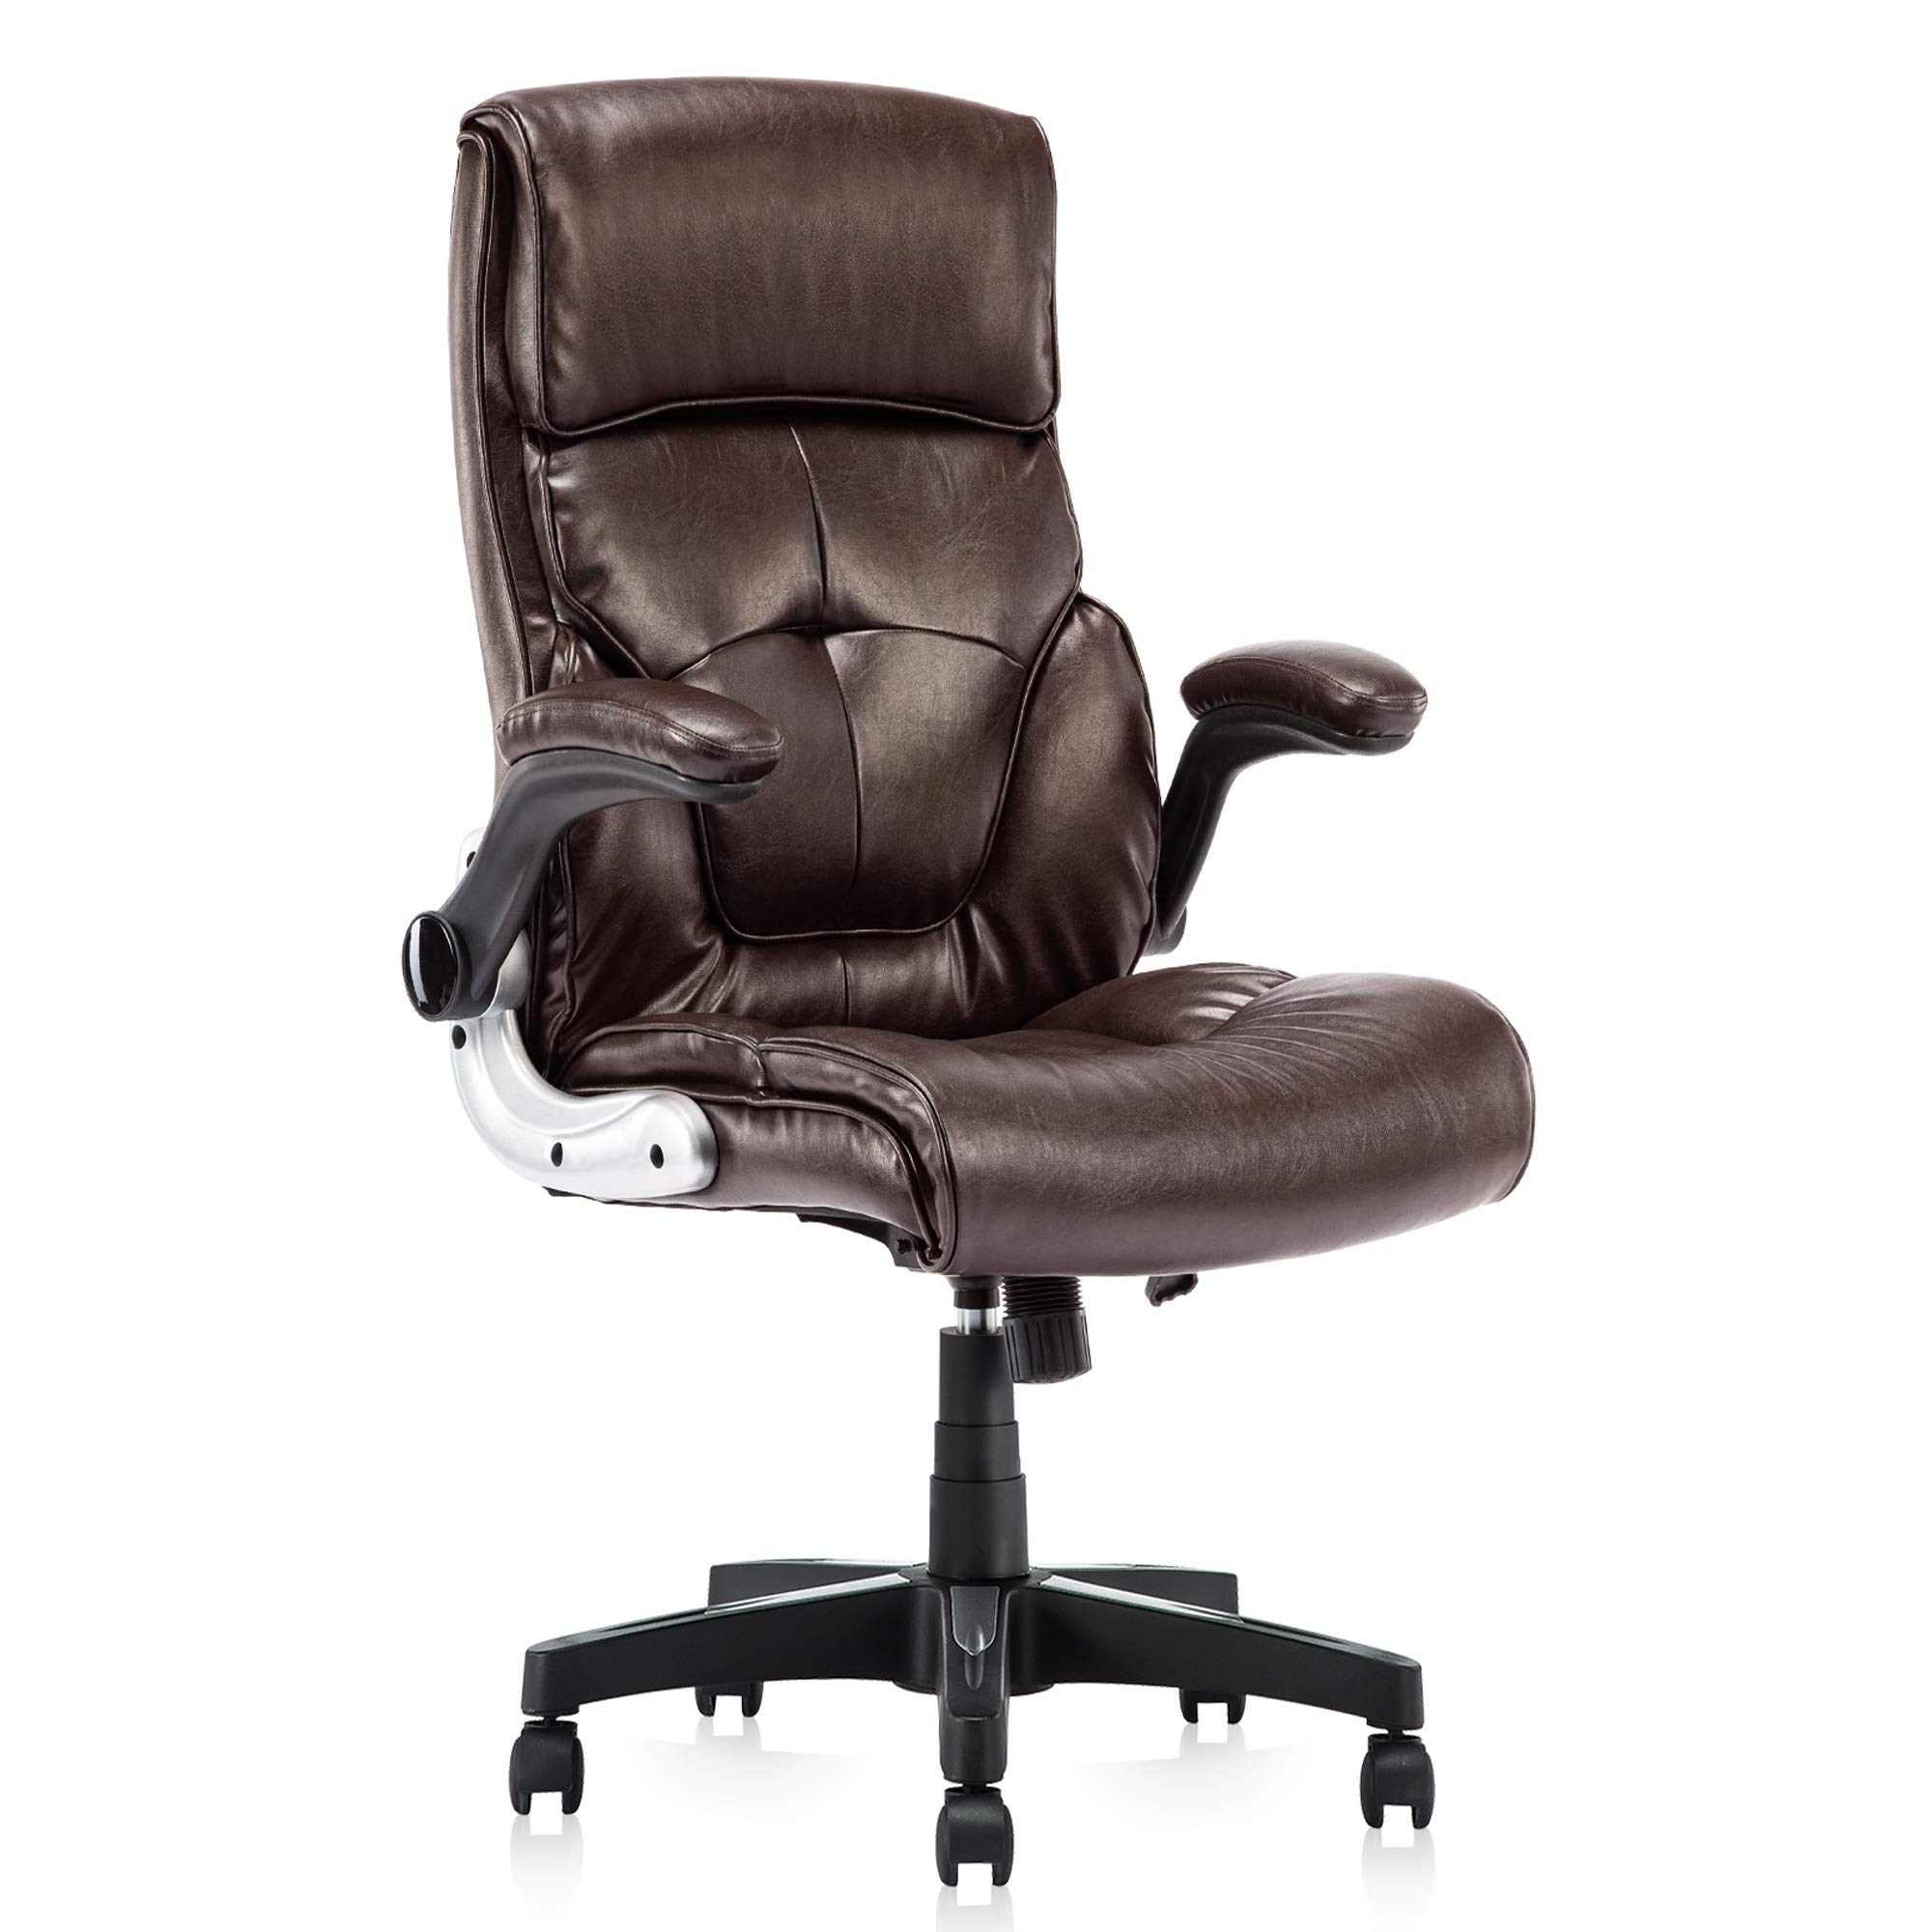 High Back Leather Office Chair - Adjustable Tilt Angle and Flip-up Arms Executive Computer Desk Chair, Thick Padding for Comfort and Ergonomic Design for Lumbar Support, Brown by YAMASORO